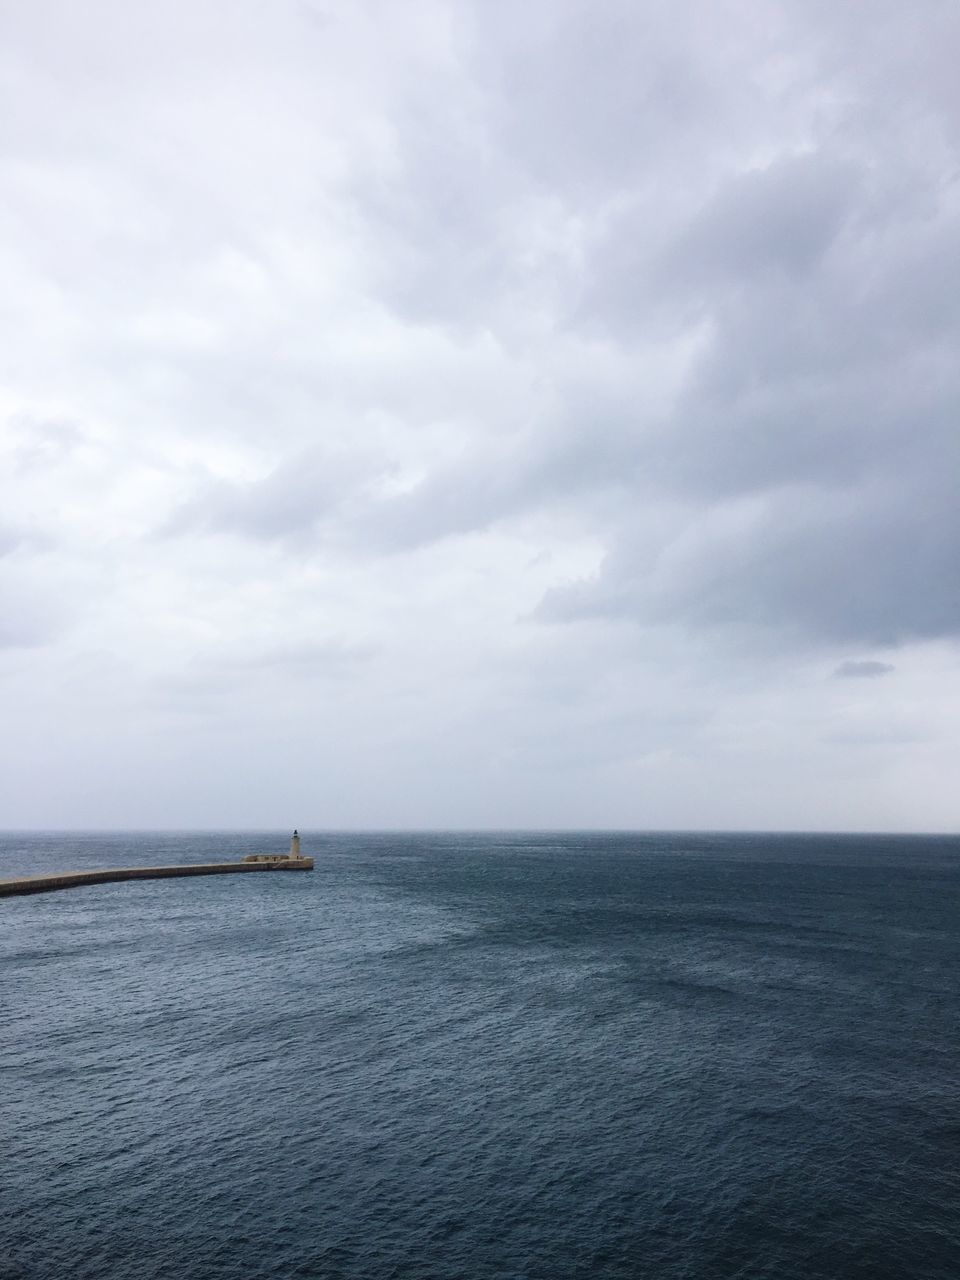 sea, waterfront, water, horizon over water, sky, tranquil scene, tranquility, scenics, beauty in nature, nature, rippled, cloud - sky, cloudy, seascape, cloud, idyllic, outdoors, day, no people, remote